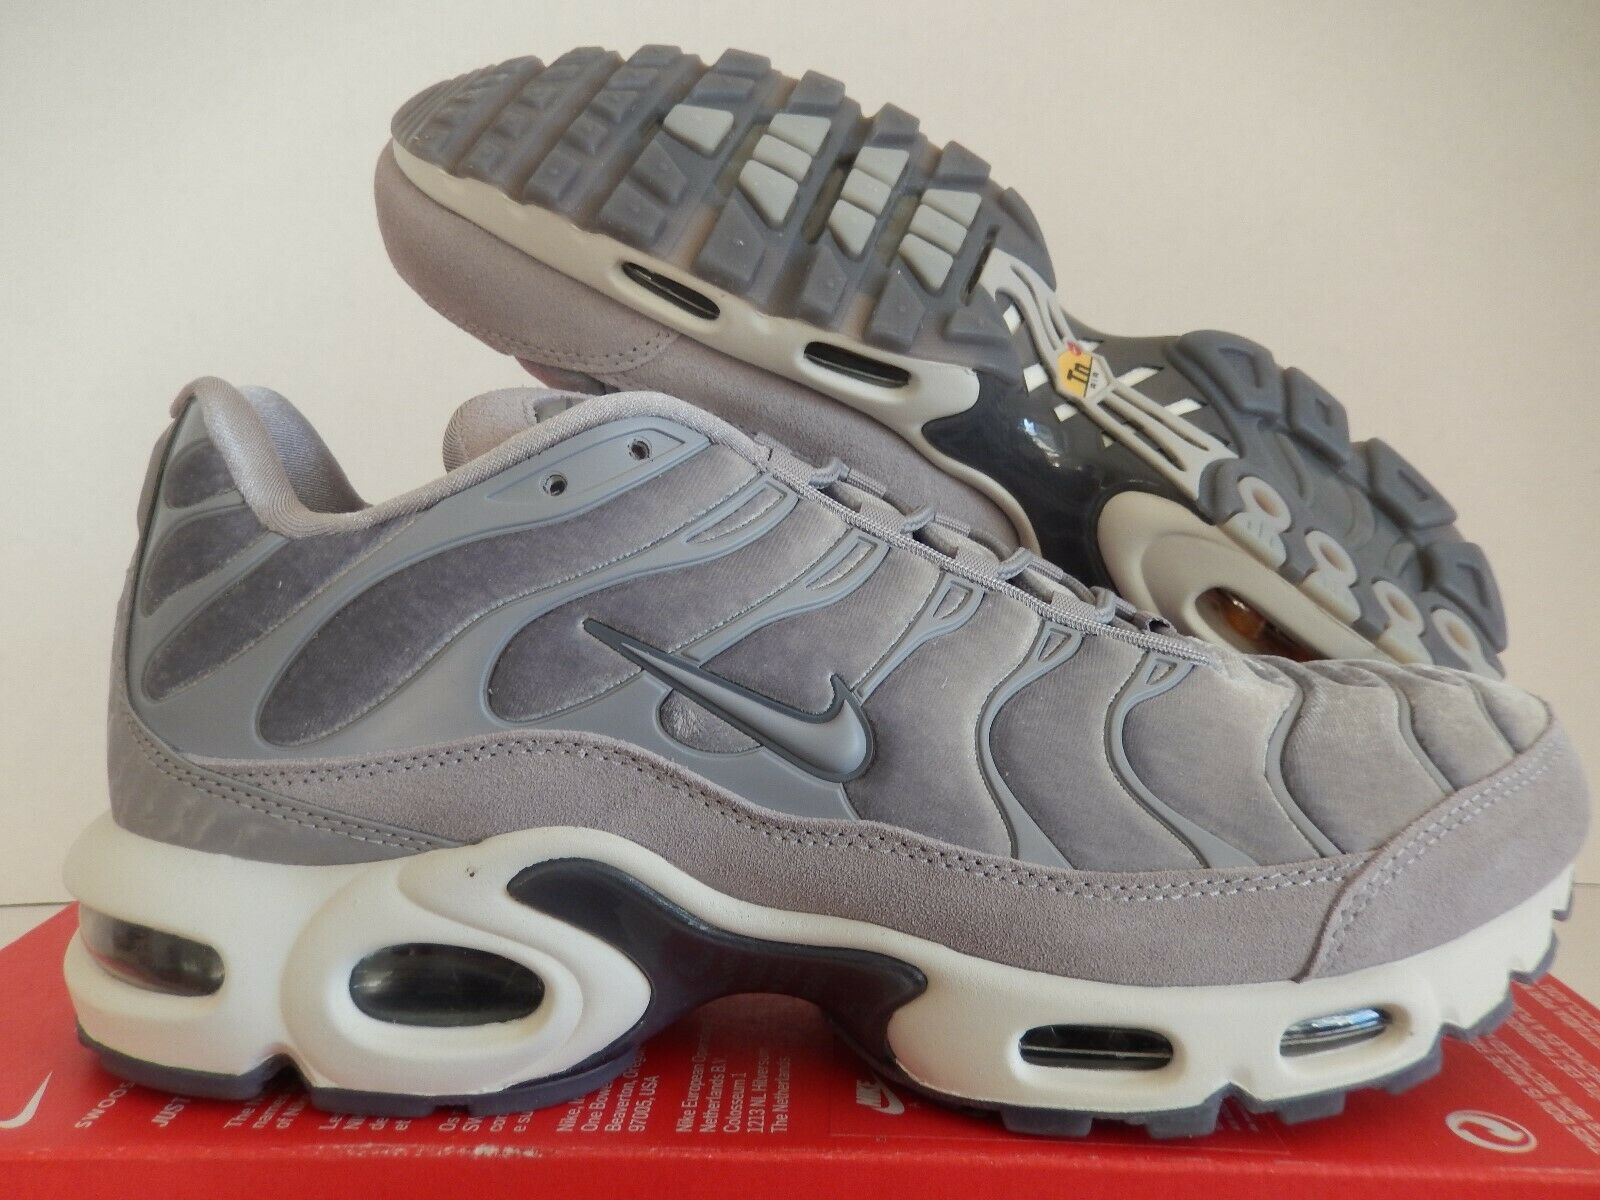 WMNS NIKE AIR MAX PLUS LX GUNSMOKE-ATMOSPHERE GREY SZ 11 [AH6788-001]